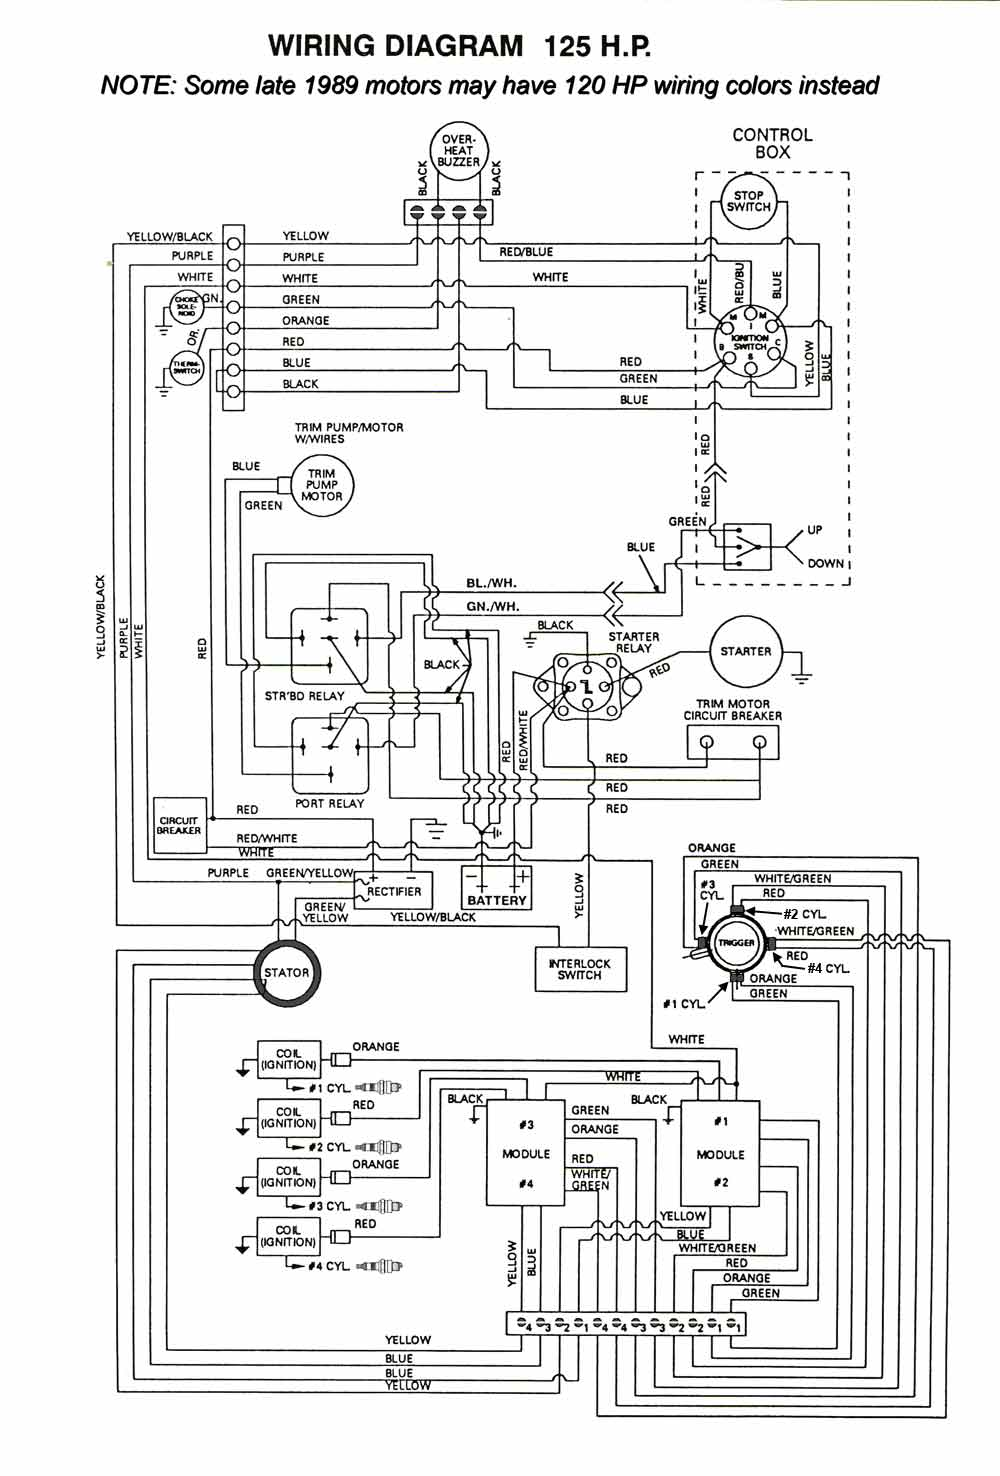 mastertech marine -- chrysler & force outboard wiring diagrams 1991 mercury capri wiring diagram